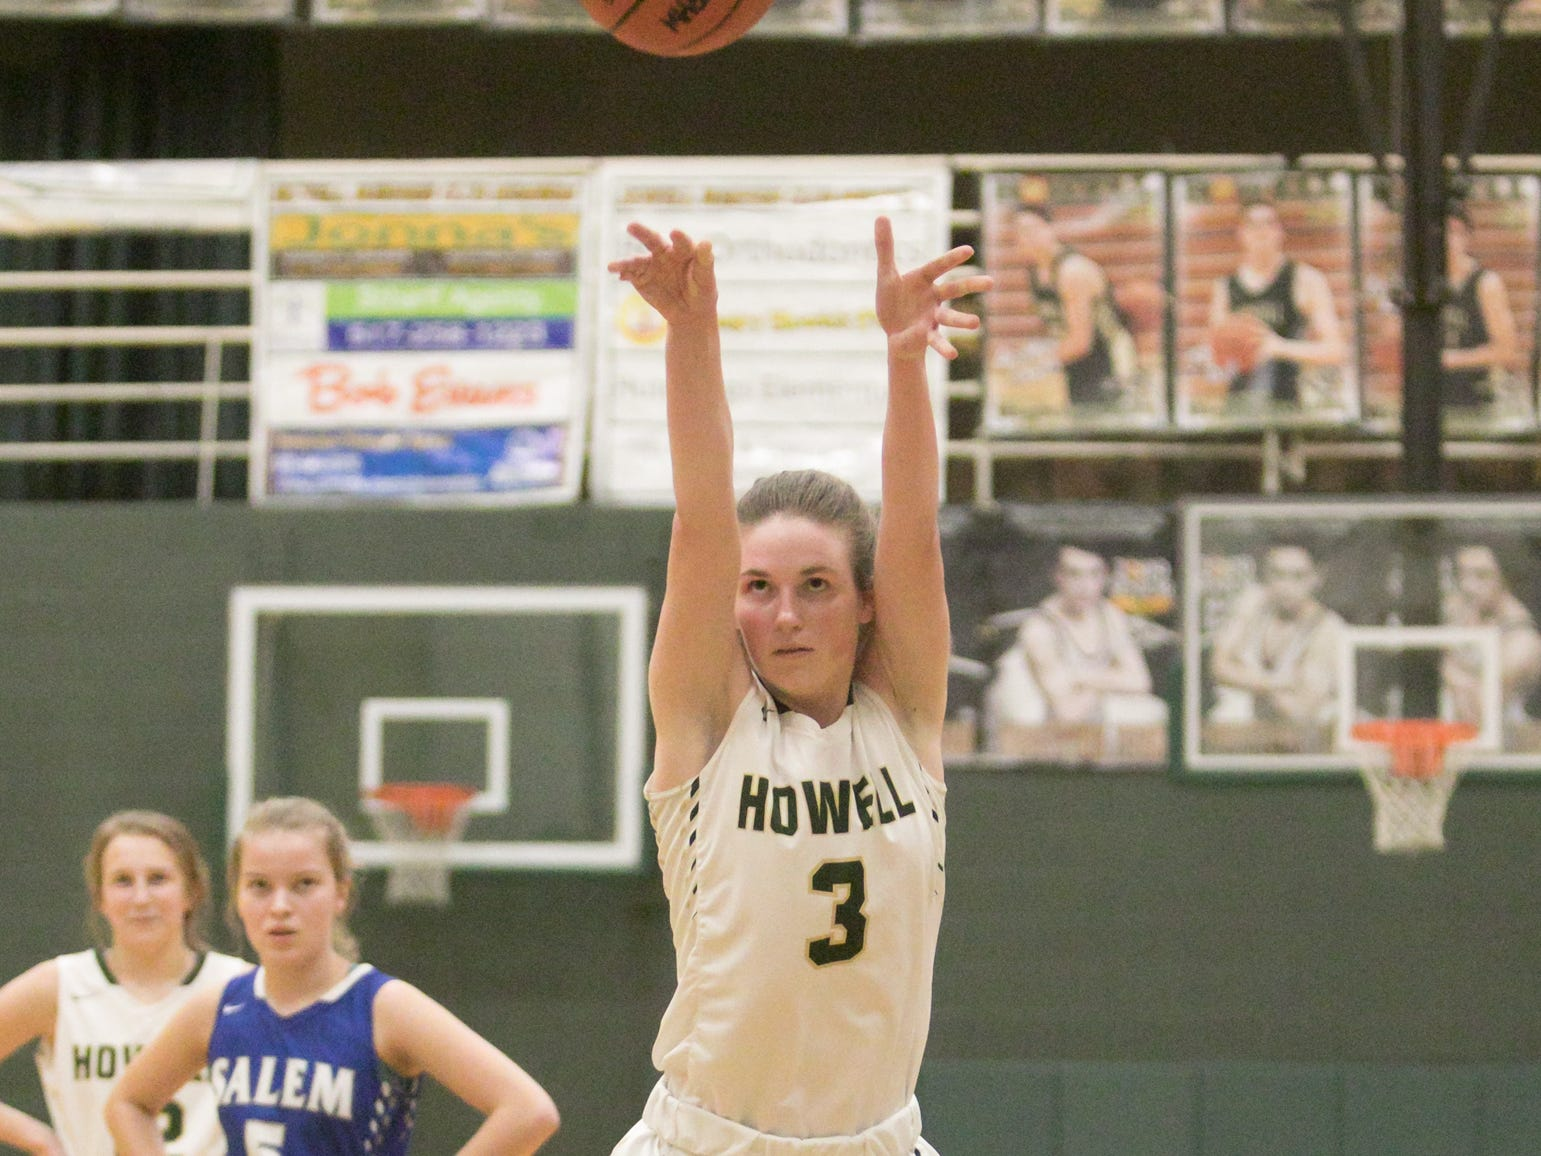 Haley Smathers of Howell shoots a free throw in a 48-17 victory over Salem on Tuesday, Feb. 5, 2019.